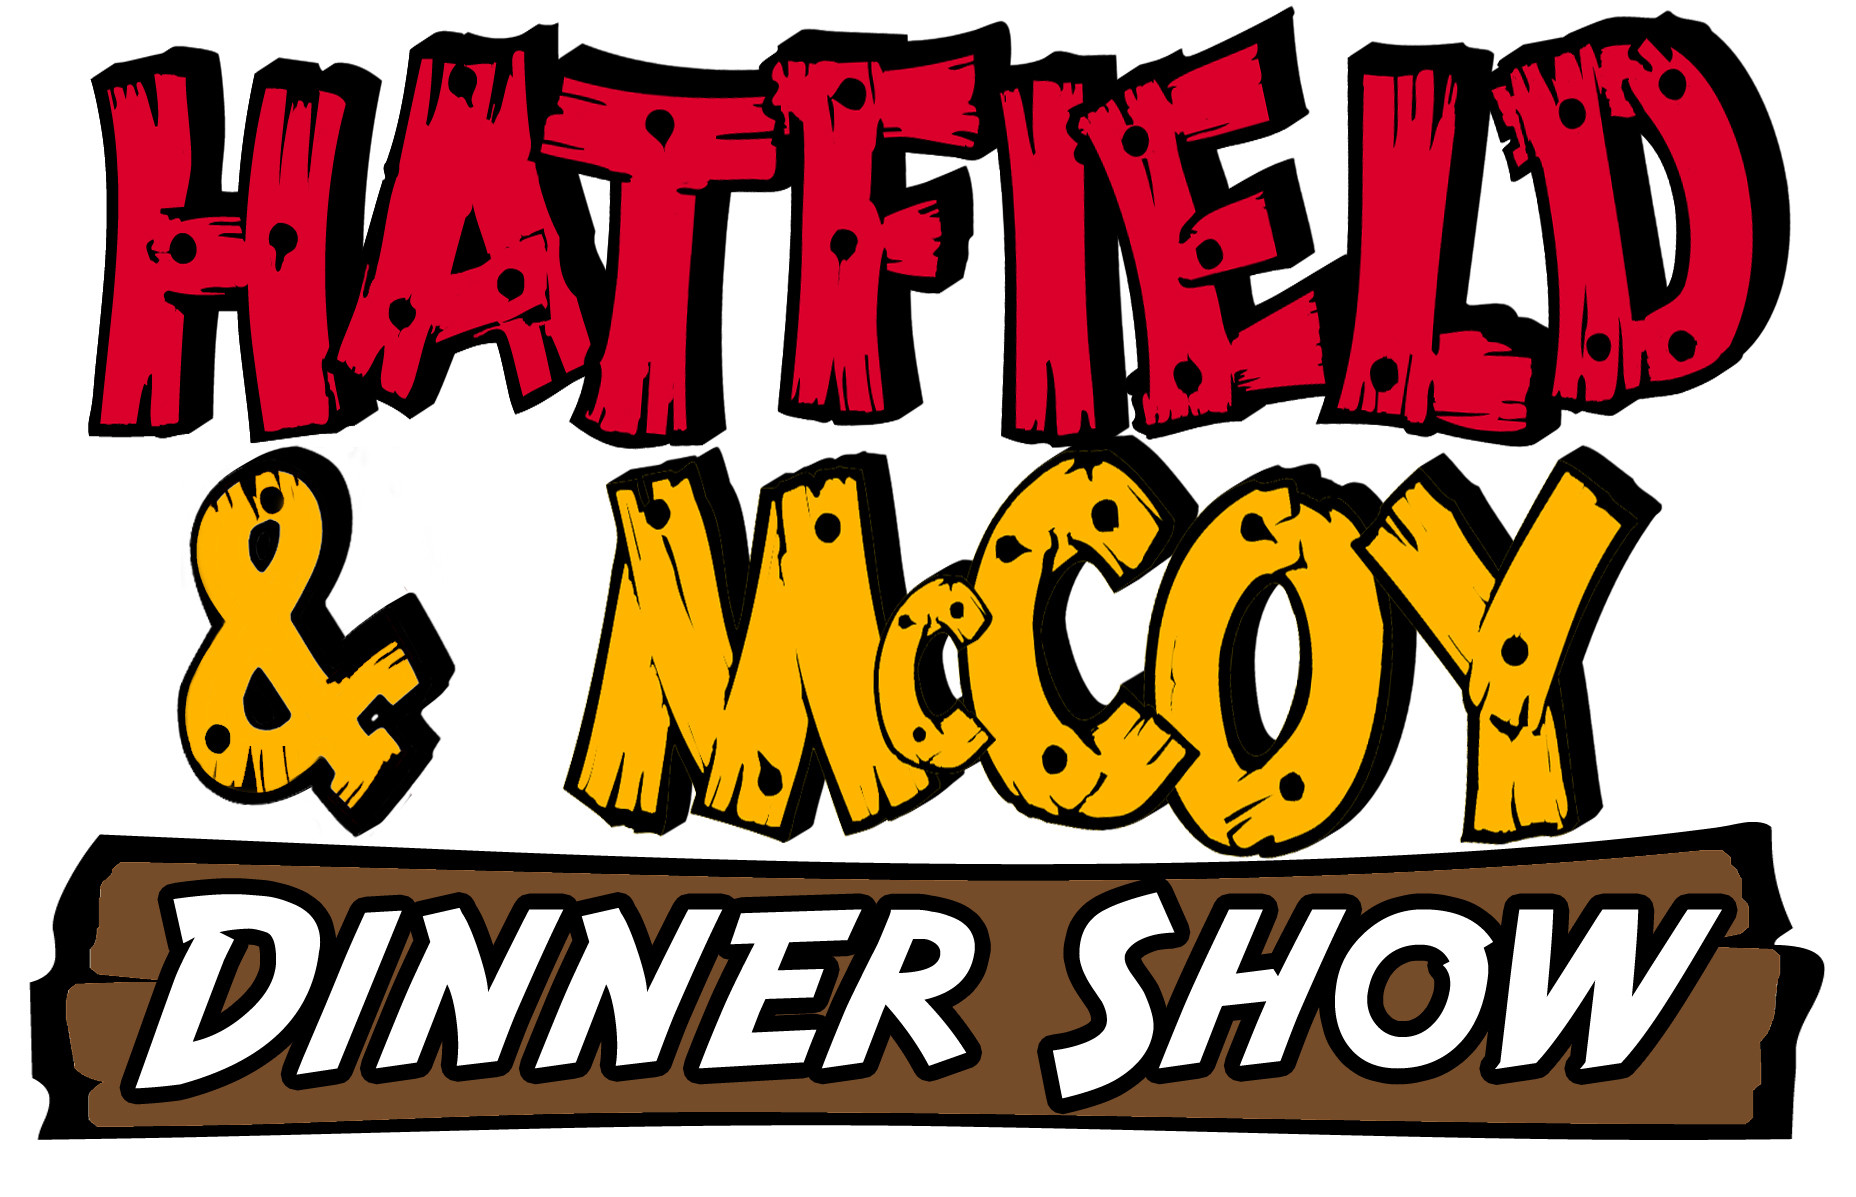 Hatfield Mccoy Dinner Show  The Smokies Pigeon Forge & Honkytonk MAXIMA Tours 2017